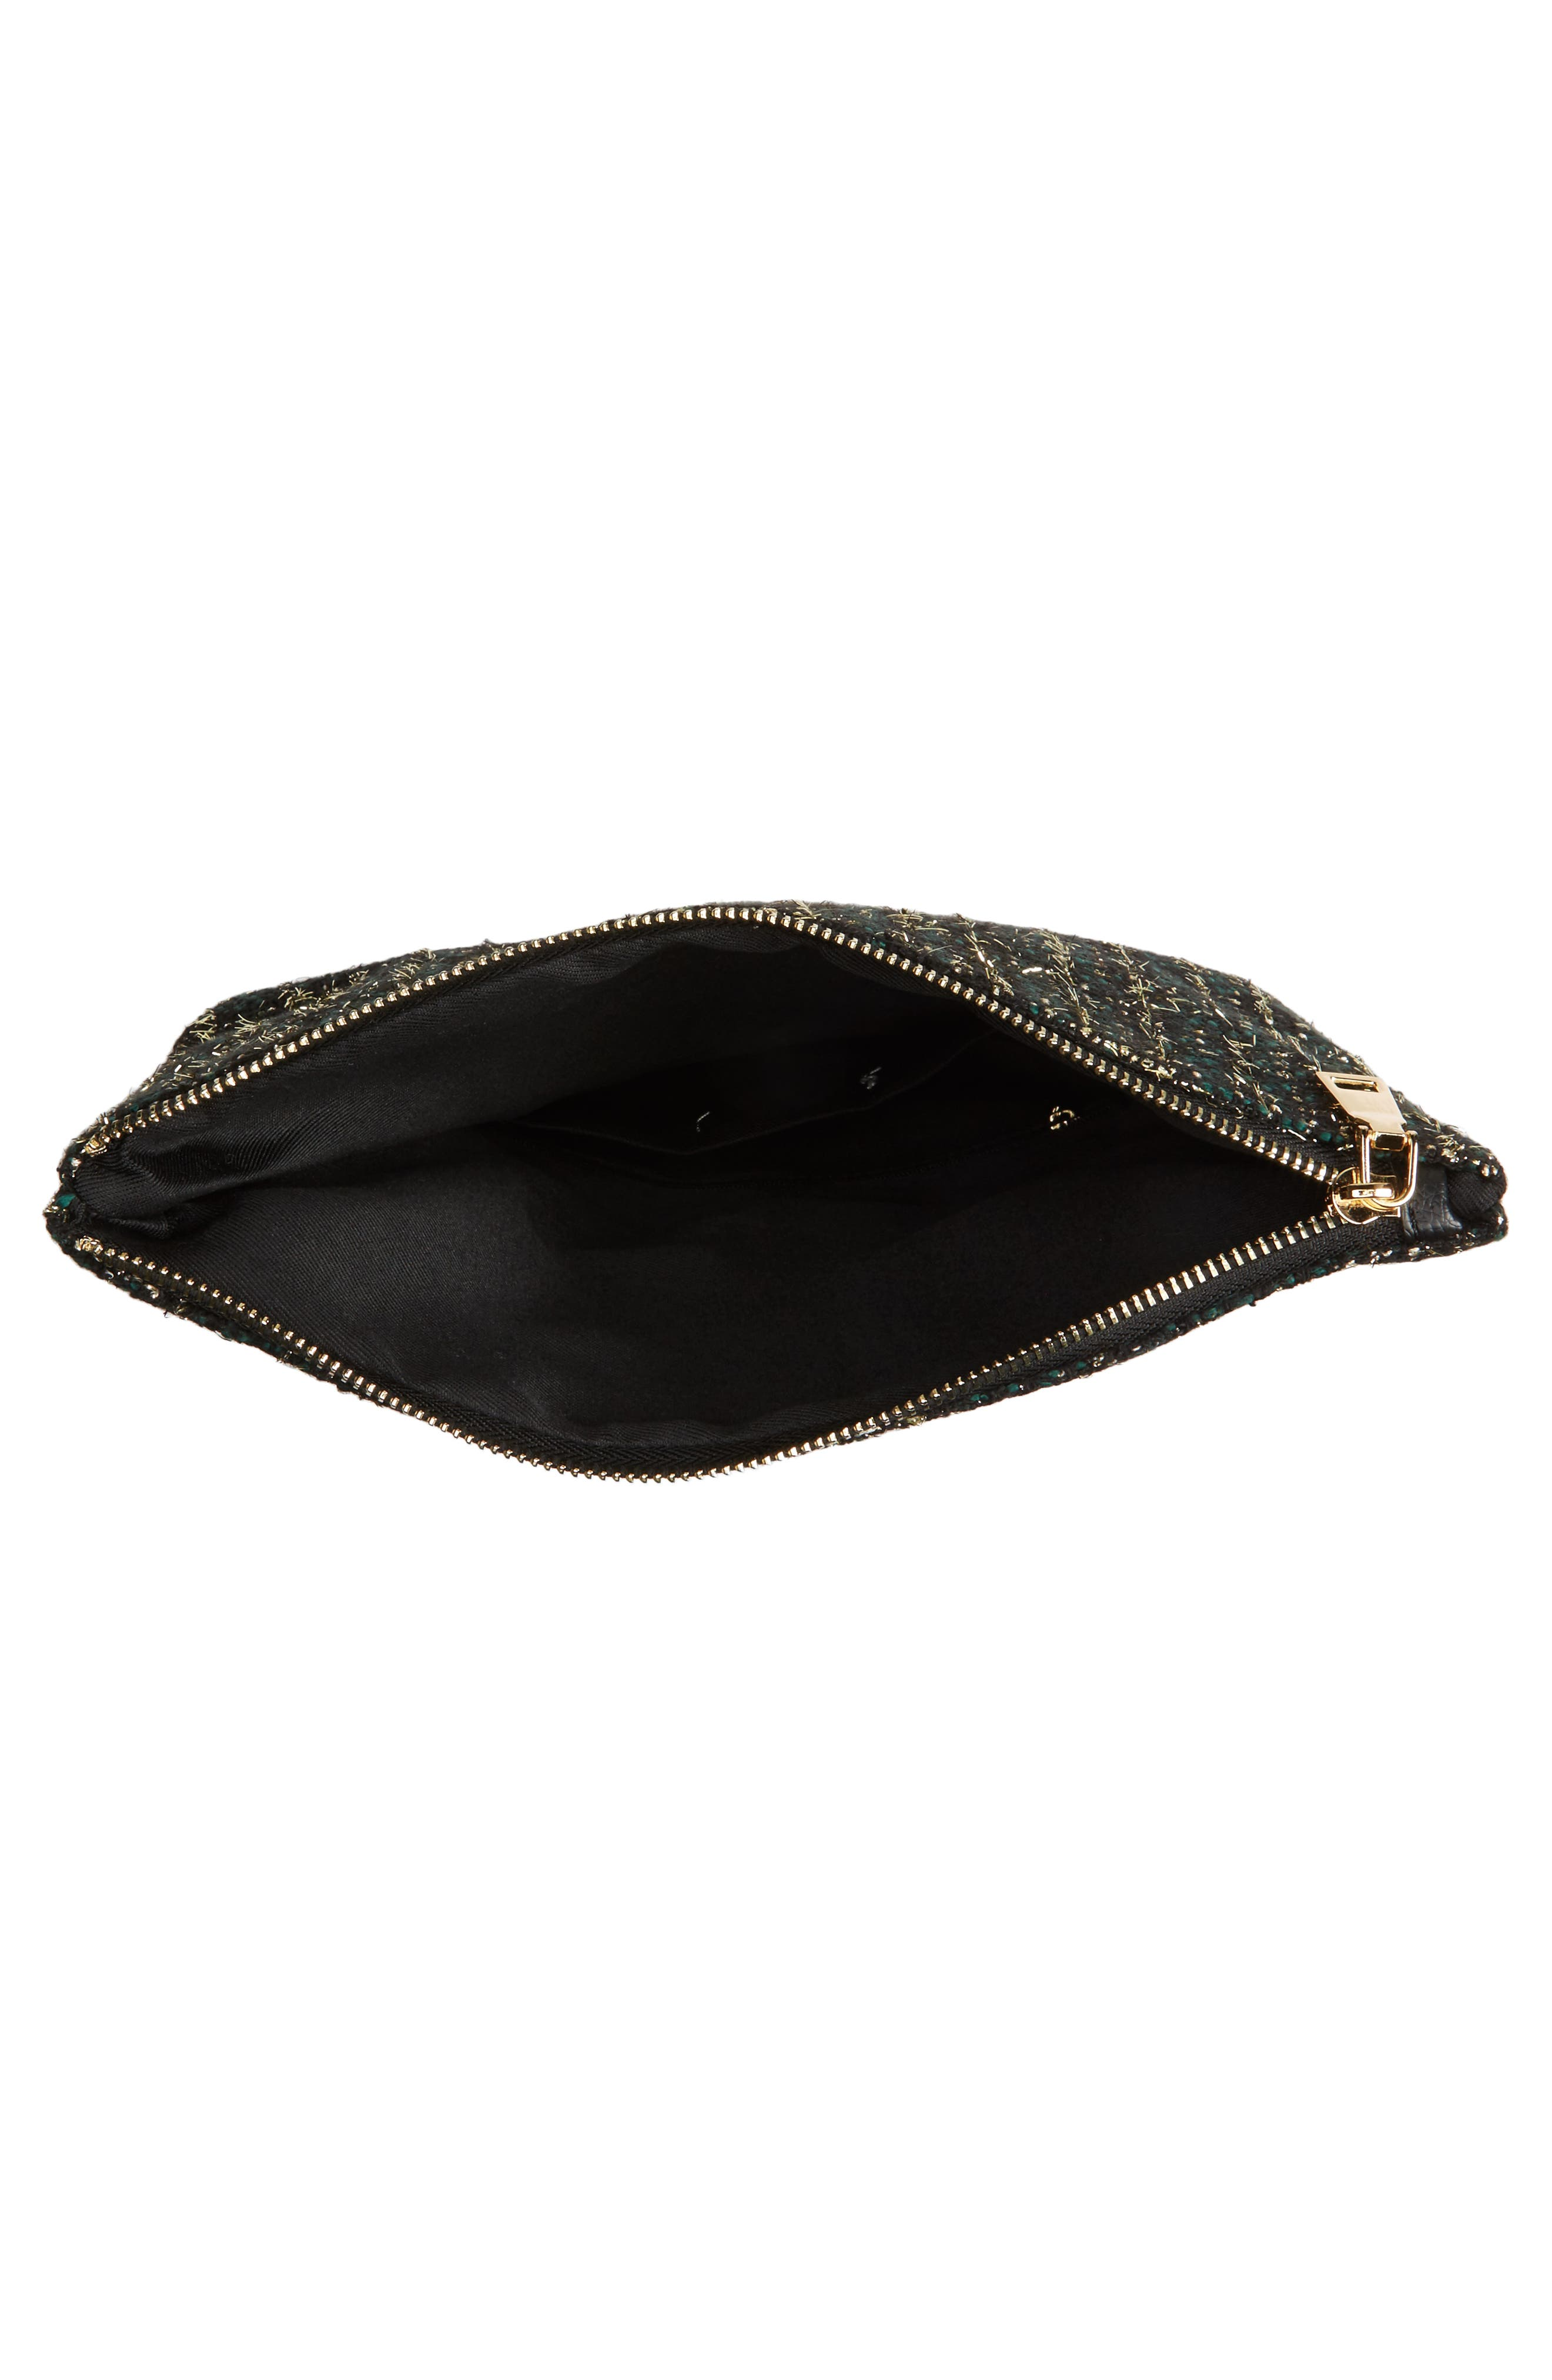 Tweed Foldover Clutch,                             Alternate thumbnail 4, color,